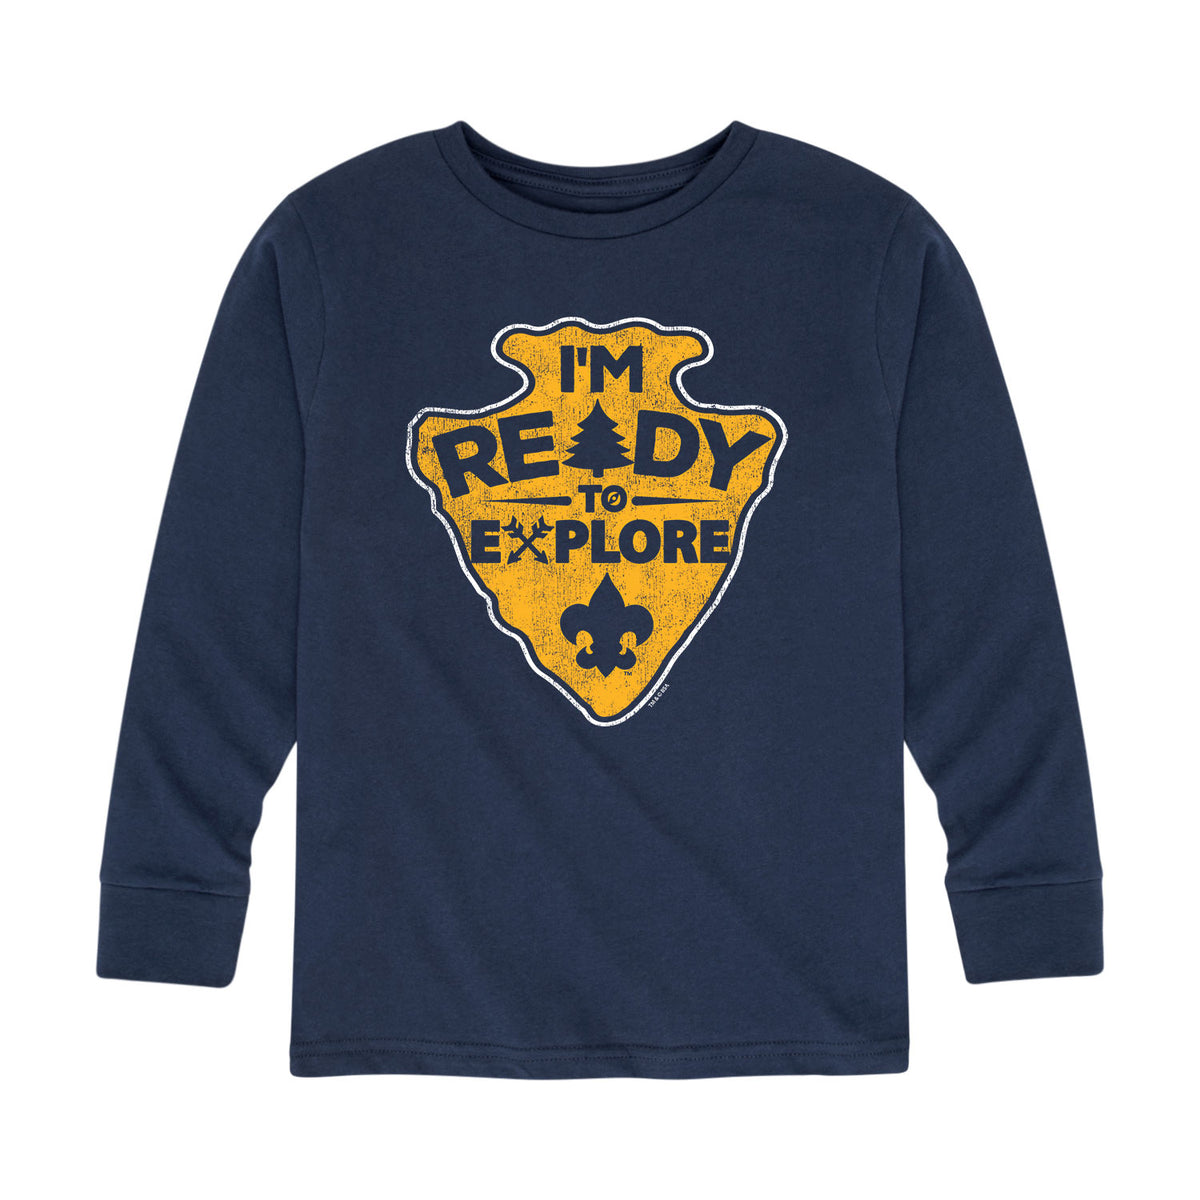 Scouts BSA - I'm Ready To Explore - Youth Long Sleeve T-Shirt